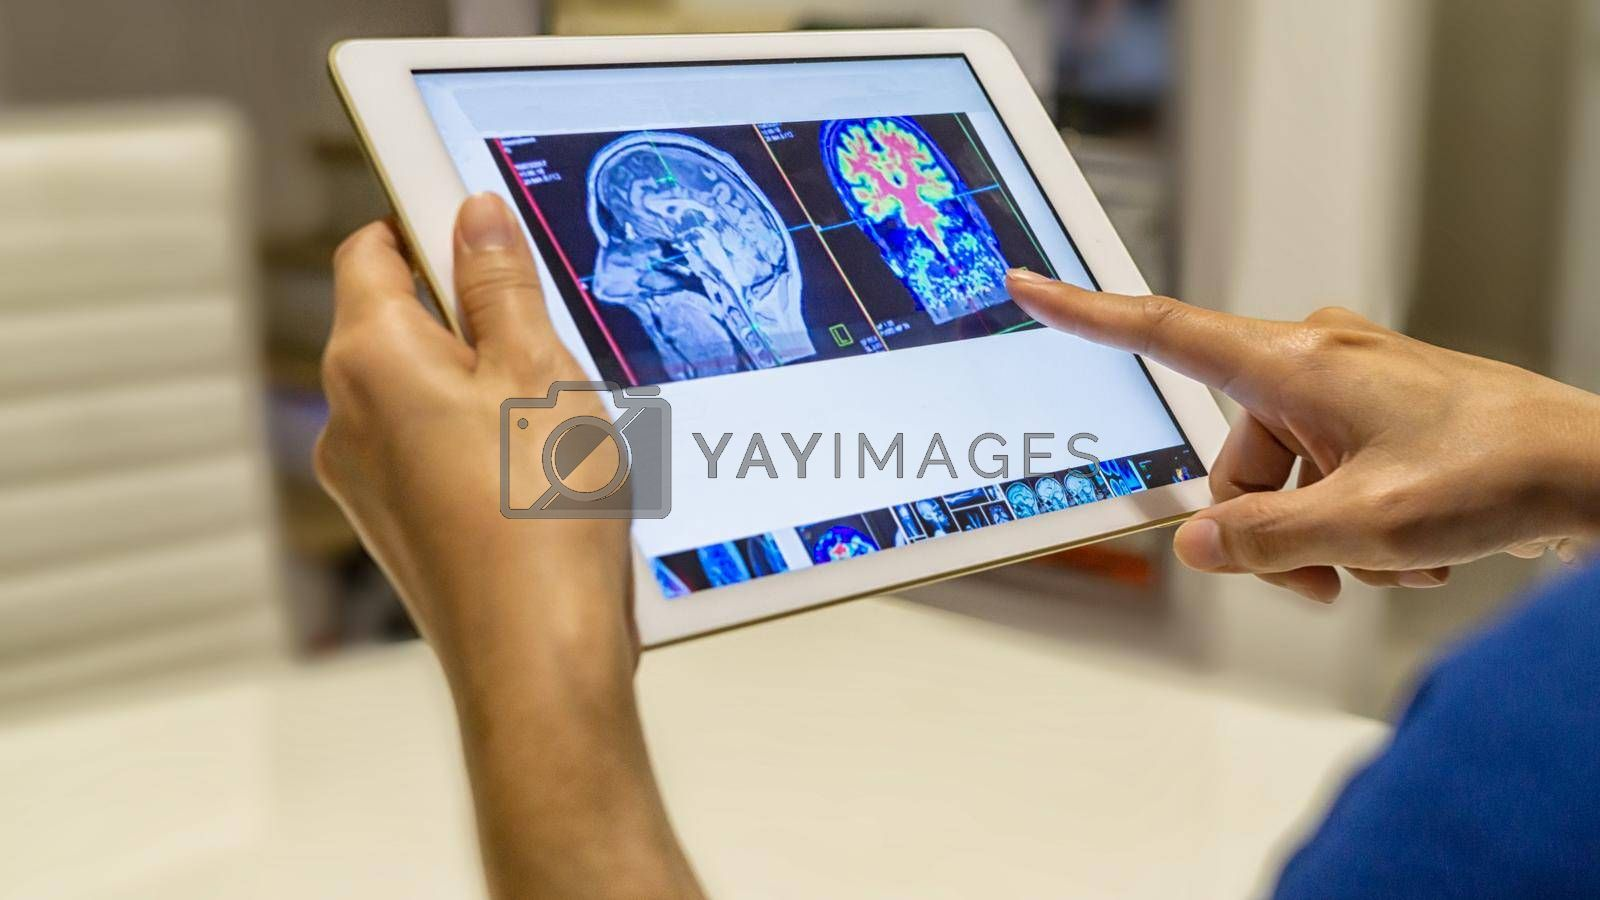 Closed up on Stethoscope and Tablet displaying brain activity scan laying on table, Medical workplace. Healthcare concept.